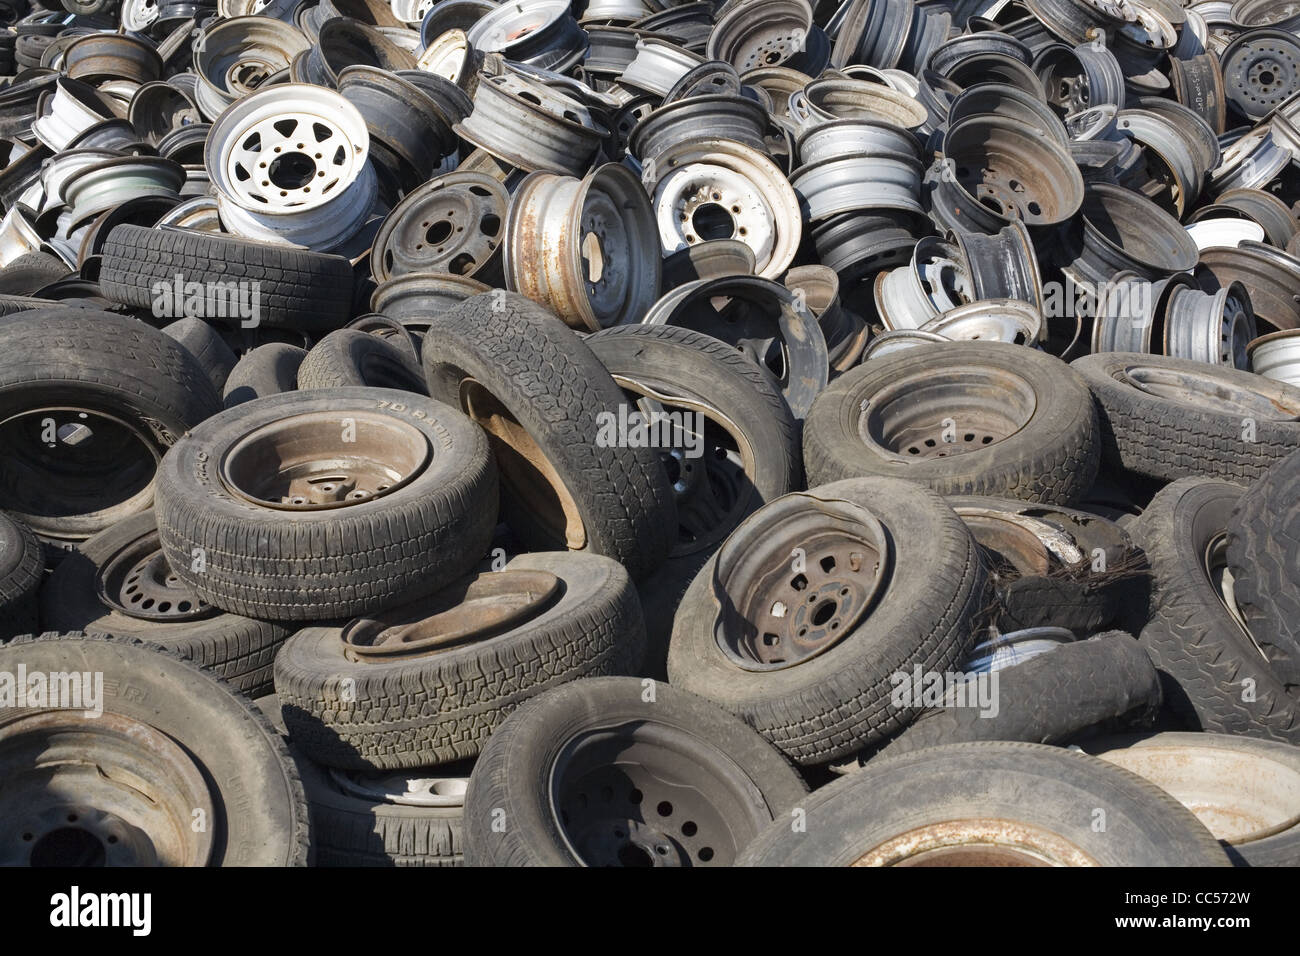 Junkyard Tires and Wheels - Stock Image